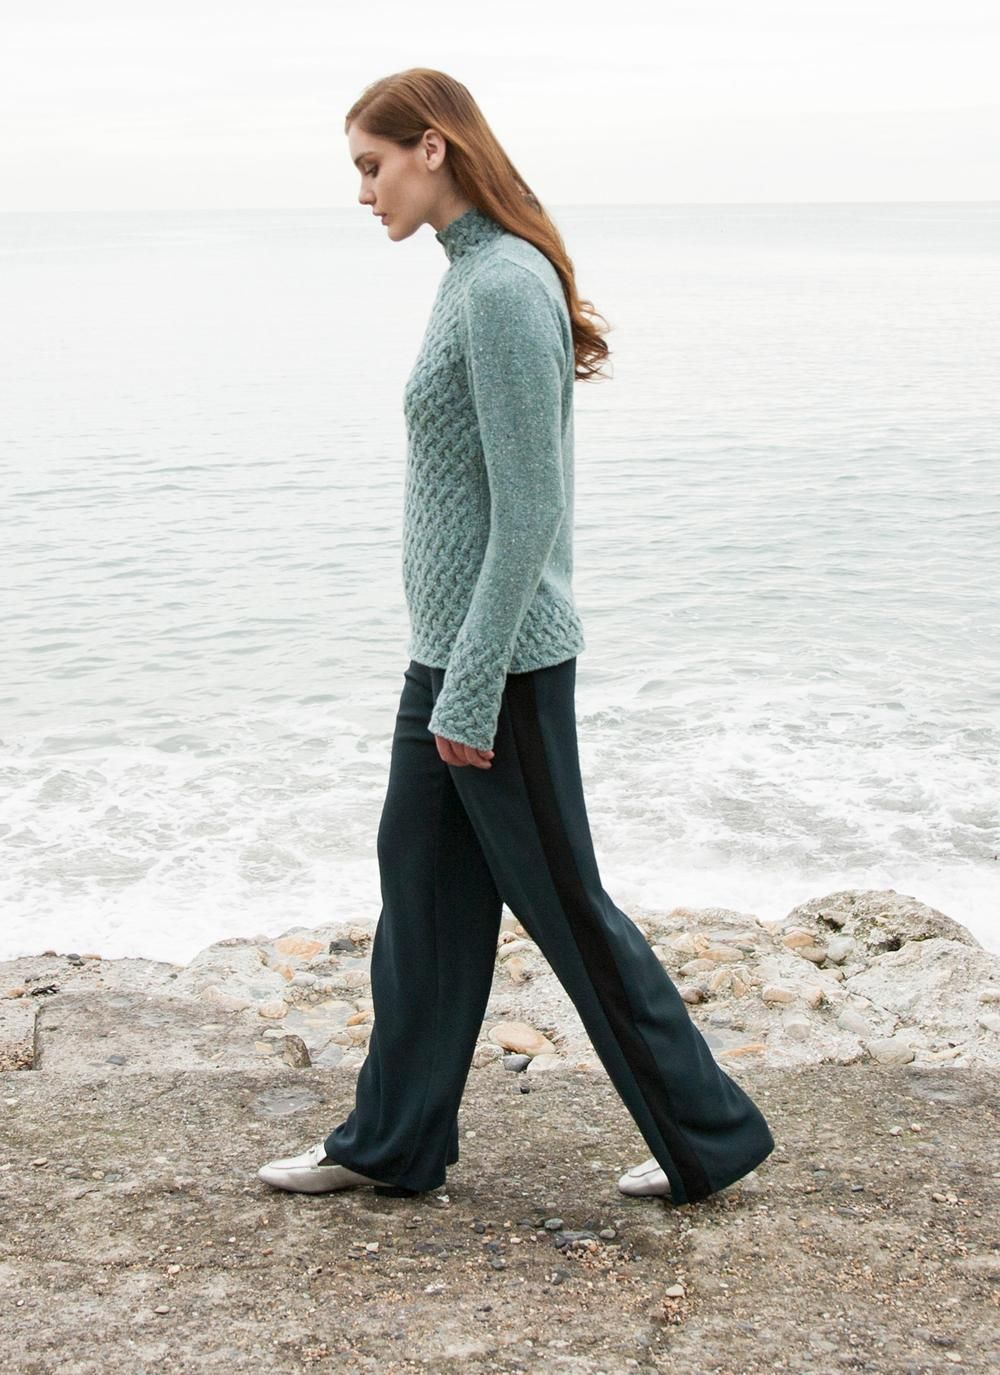 Wool Cashmere Trellis Sweater: This flattering raised crew-neck sweater is a versatile classic from the Ireland's Eye Knitwear Collection. A soft, luxurious combination of wool andcashmere is paired with an effortlessly elegant trelllis stitch design. #sweater #jumper #aran #aransweater #aranjumper #cableknit #cableknitsweater #knitwear #wool #fisherman #irish #ireland #celtic #rustic #womenswear #fashion #style #aw17 #fashionknit #fallfashion2017 #mint #green